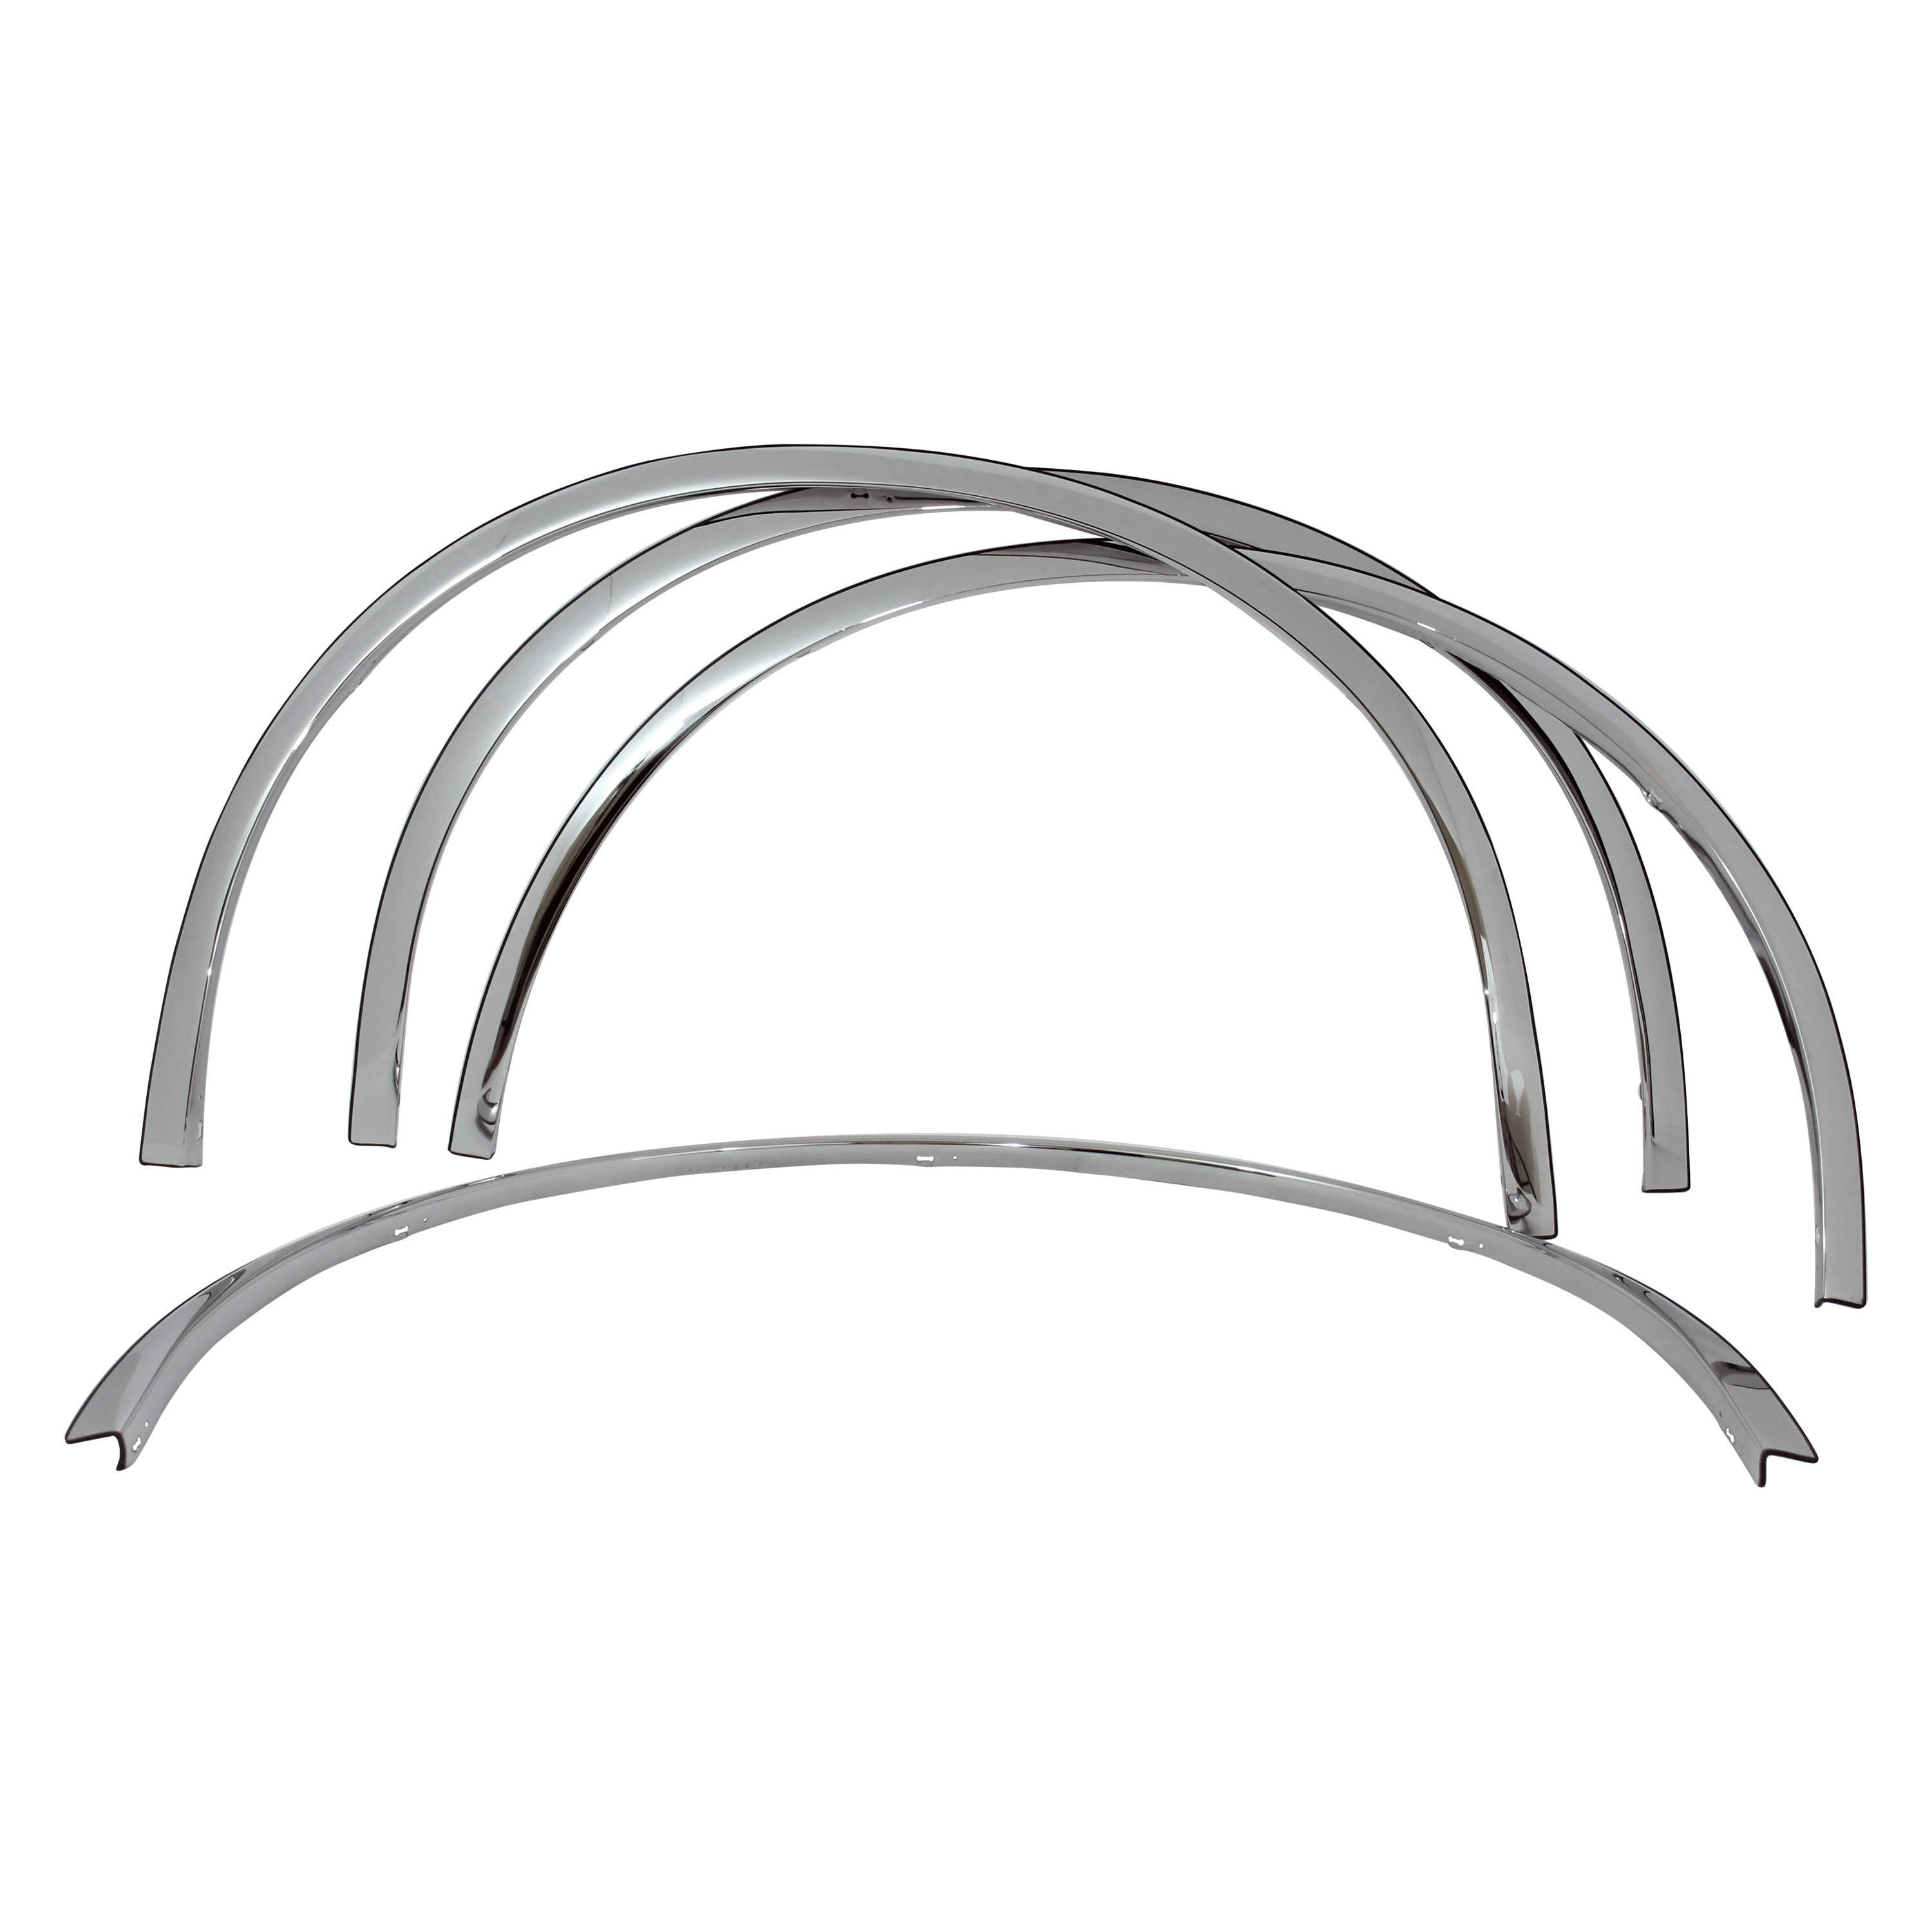 For Cadillac Dts Carrichs Ftca101 Chrome Front